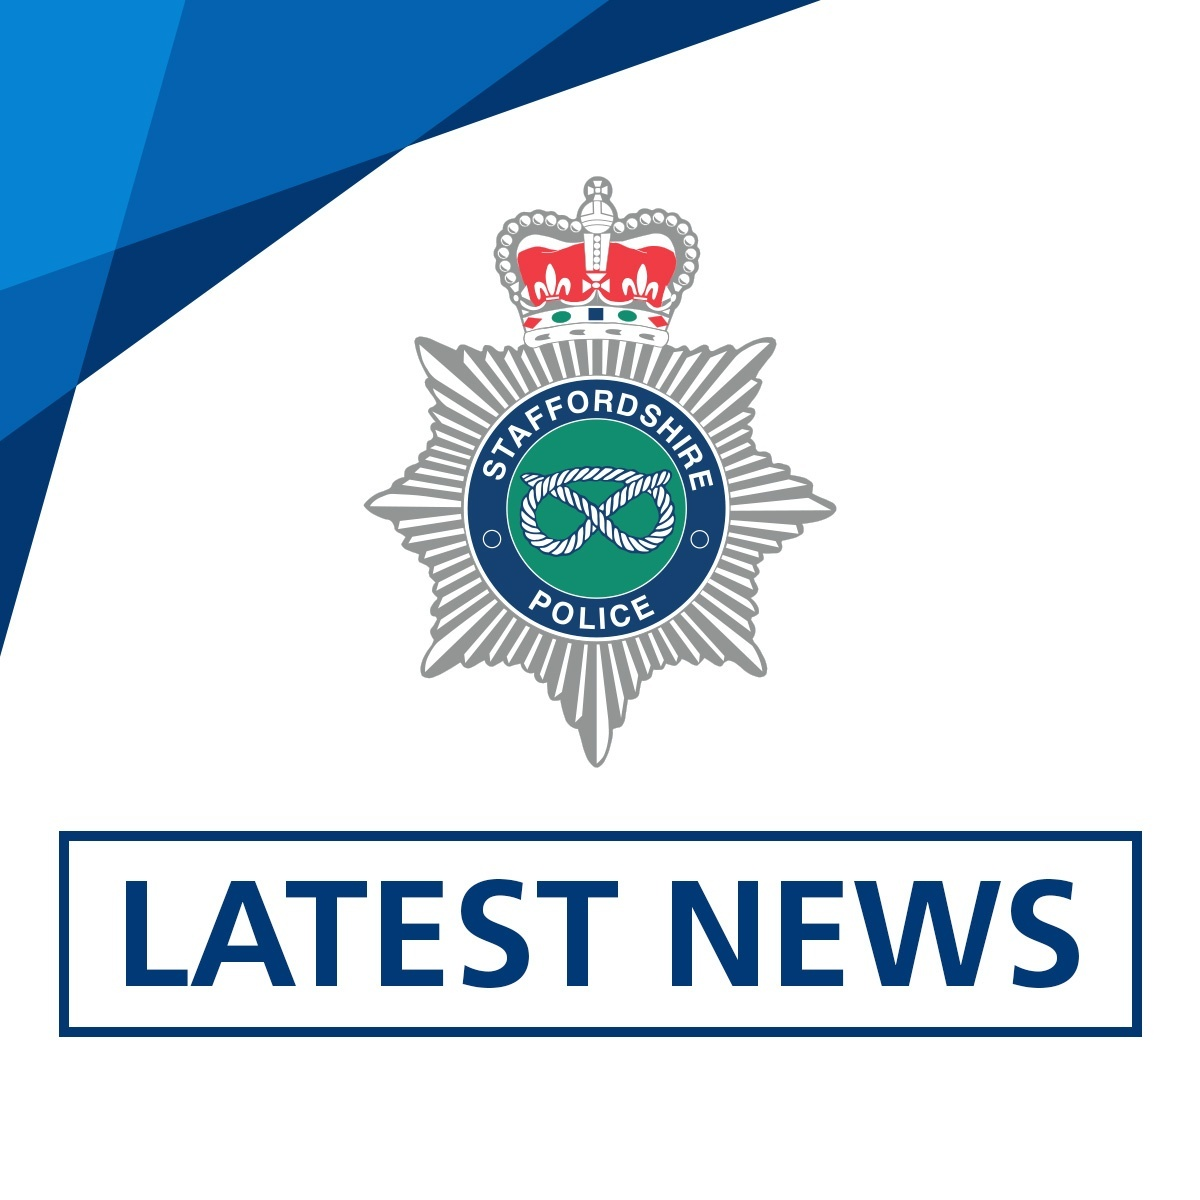 We've increased patrols following reports of disorder in Tontine Square, Hanley at around 3:30pm. Officers will be in the area to provide reassurance while we investigate the incident. Anyone with info should contact us via social media or 101 ref 477 of 24 Sept.